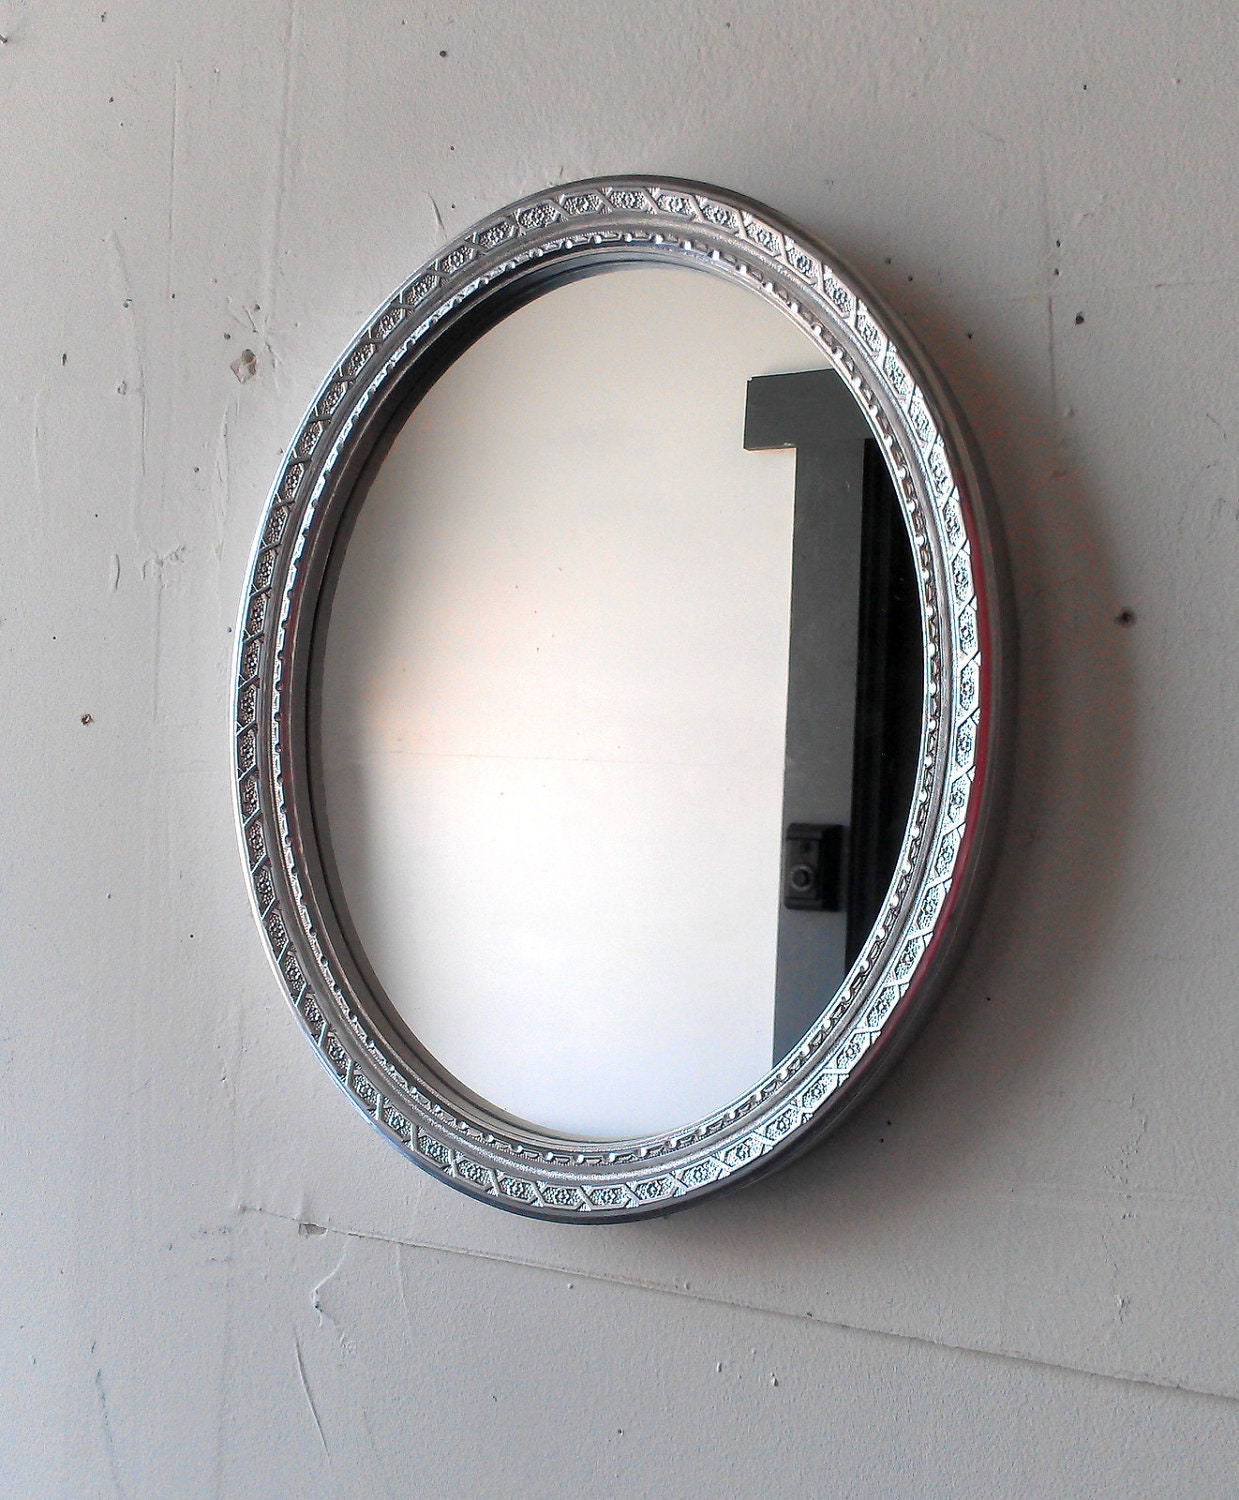 Silver Wall Mirror In Vintage Oval 13 By 10 Inches